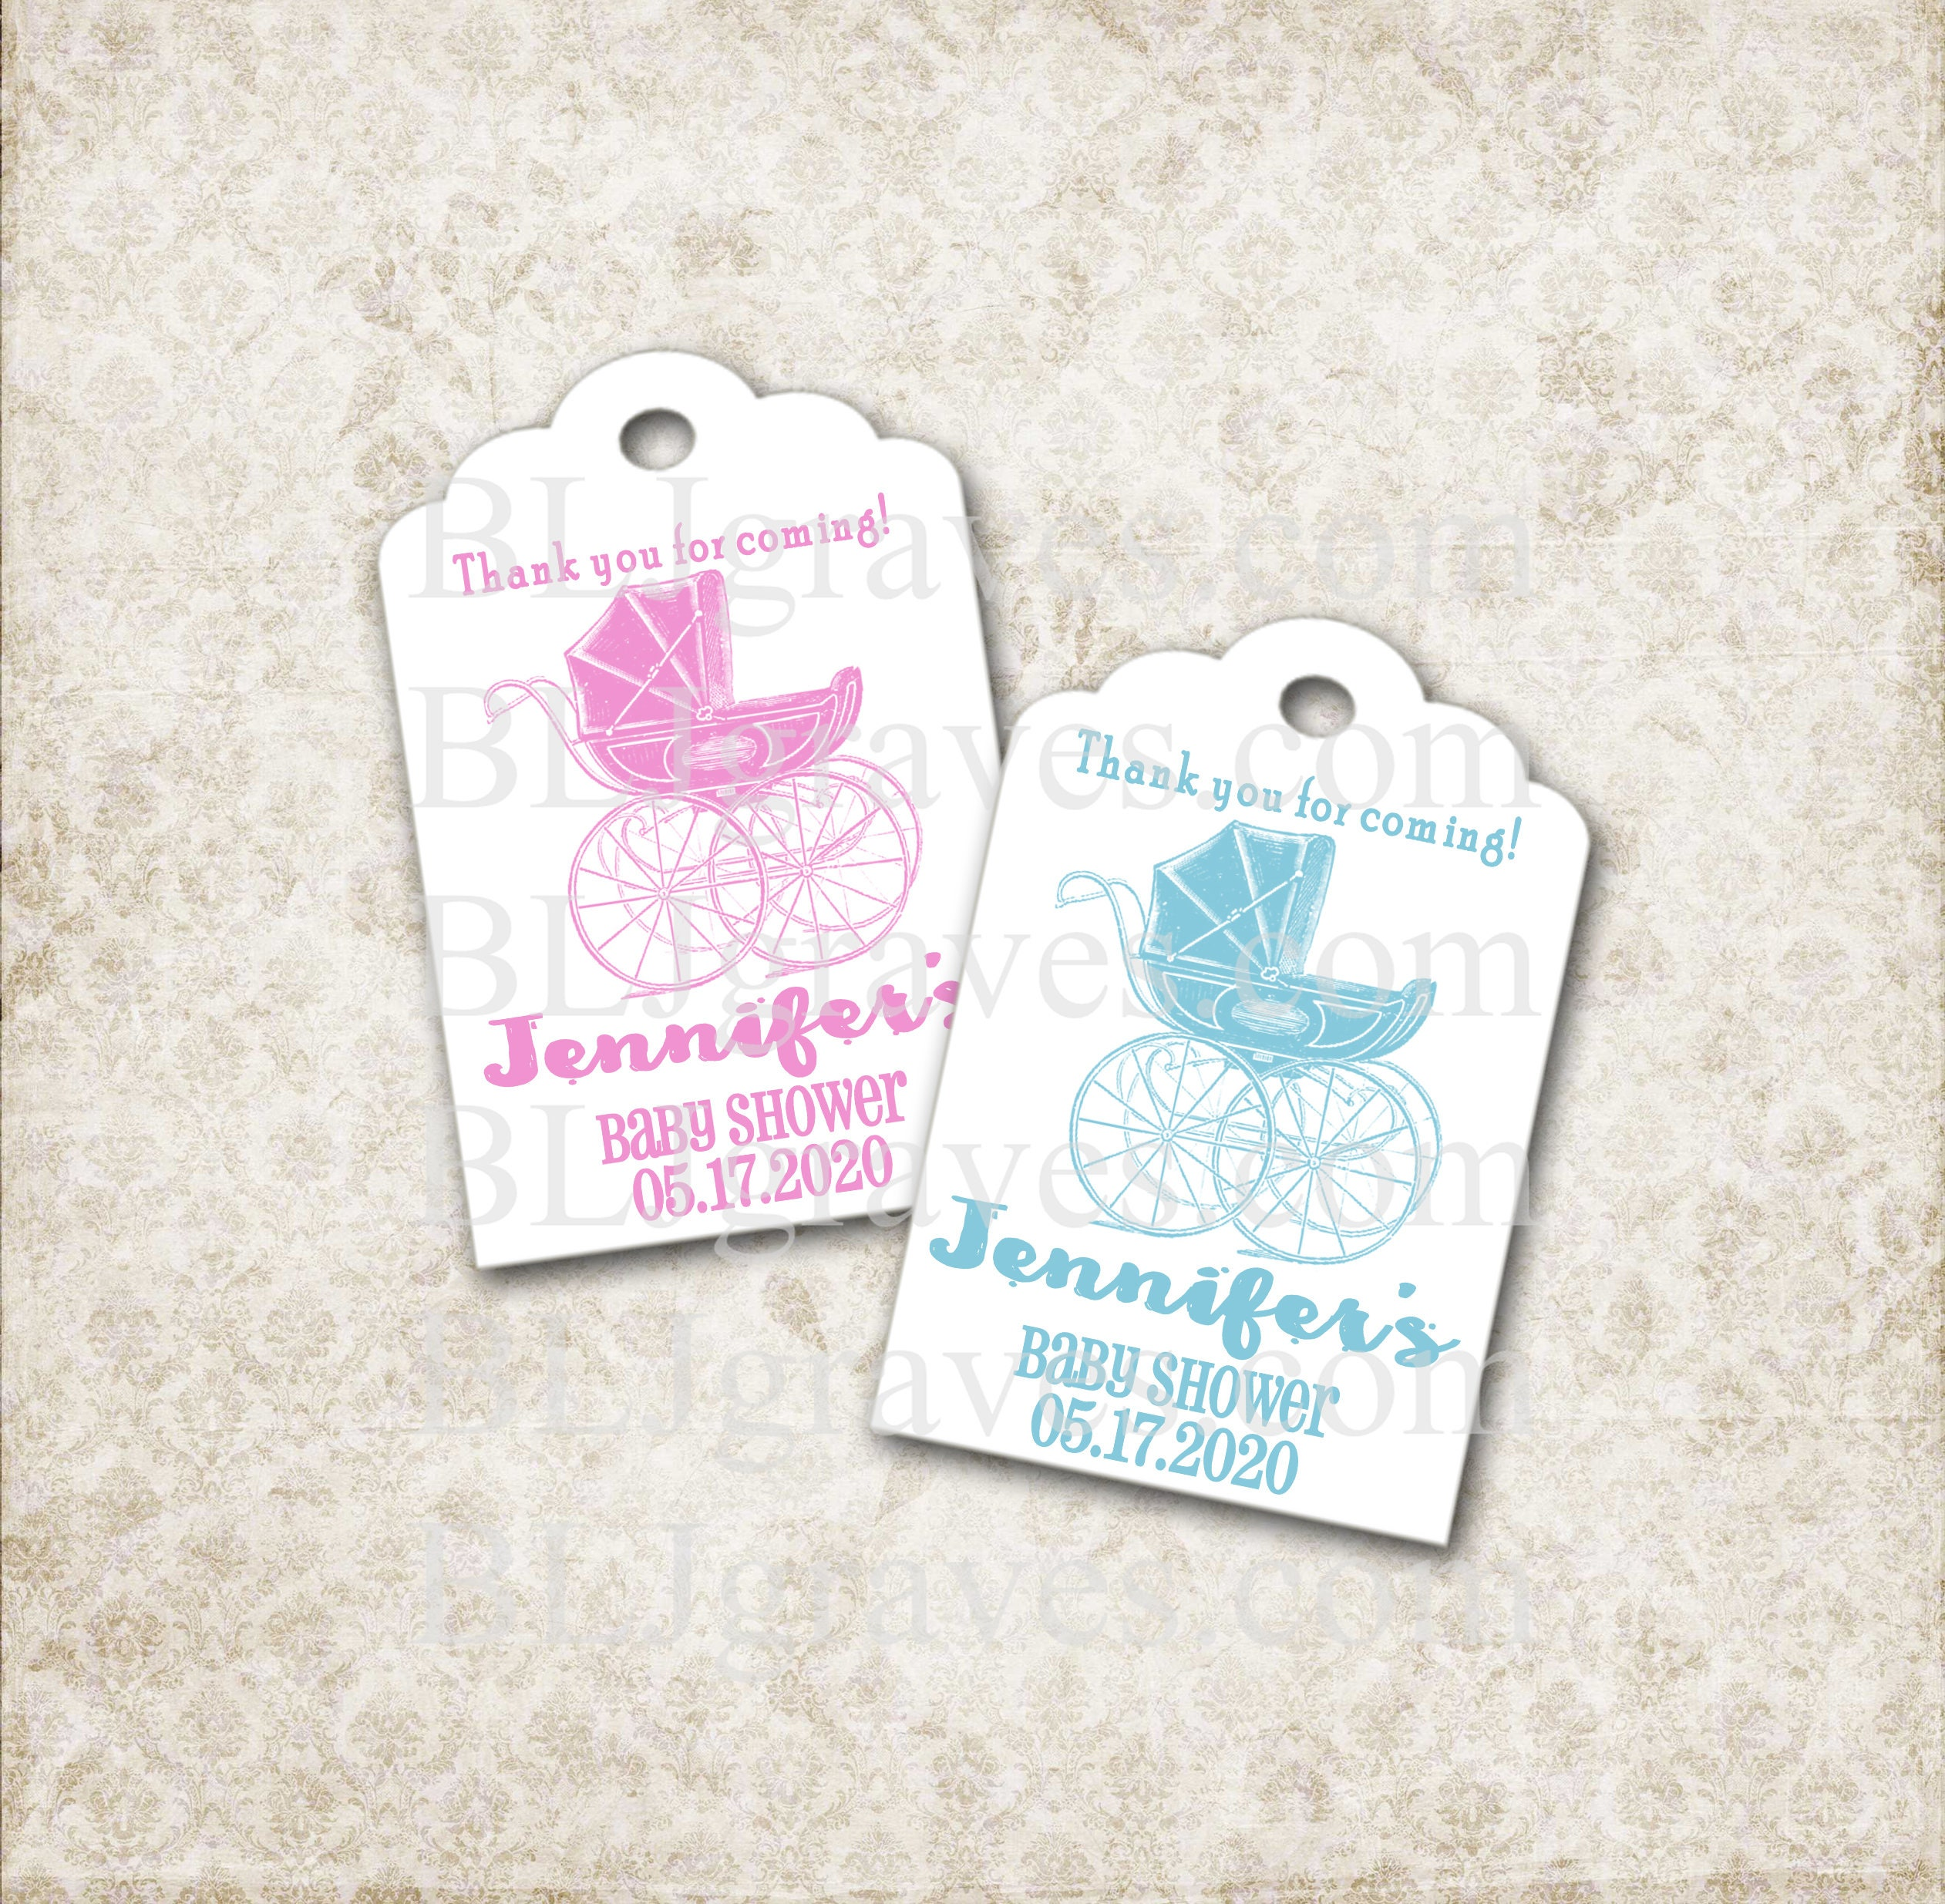 Custom Baby Shower Tags Personalized Shower Tags Thank You Etsy